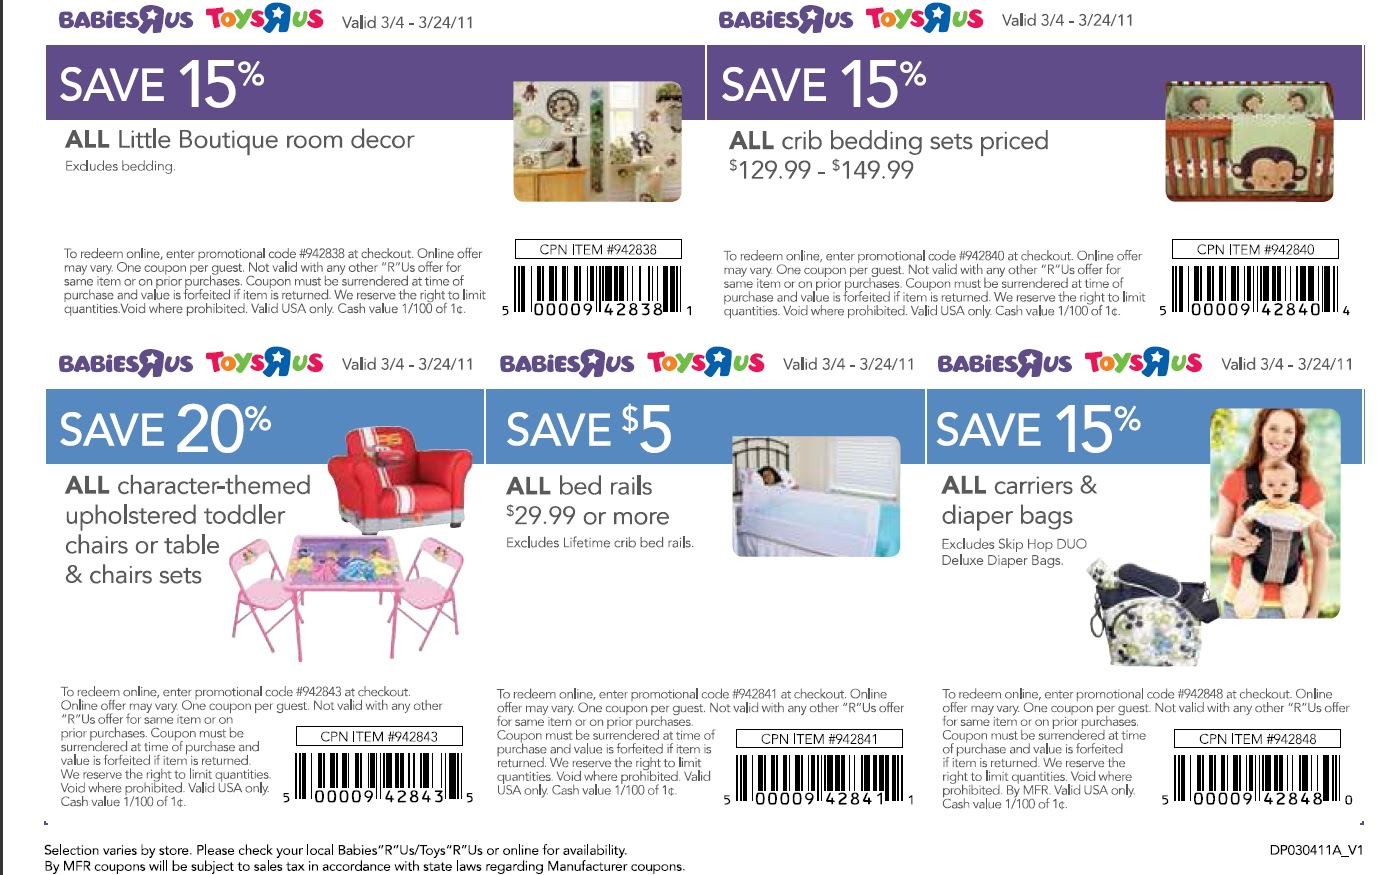 photograph relating to Toysrus Printable Coupons referred to as Toys r us retail outlet discount coupons printable - Bob evans navy low cost